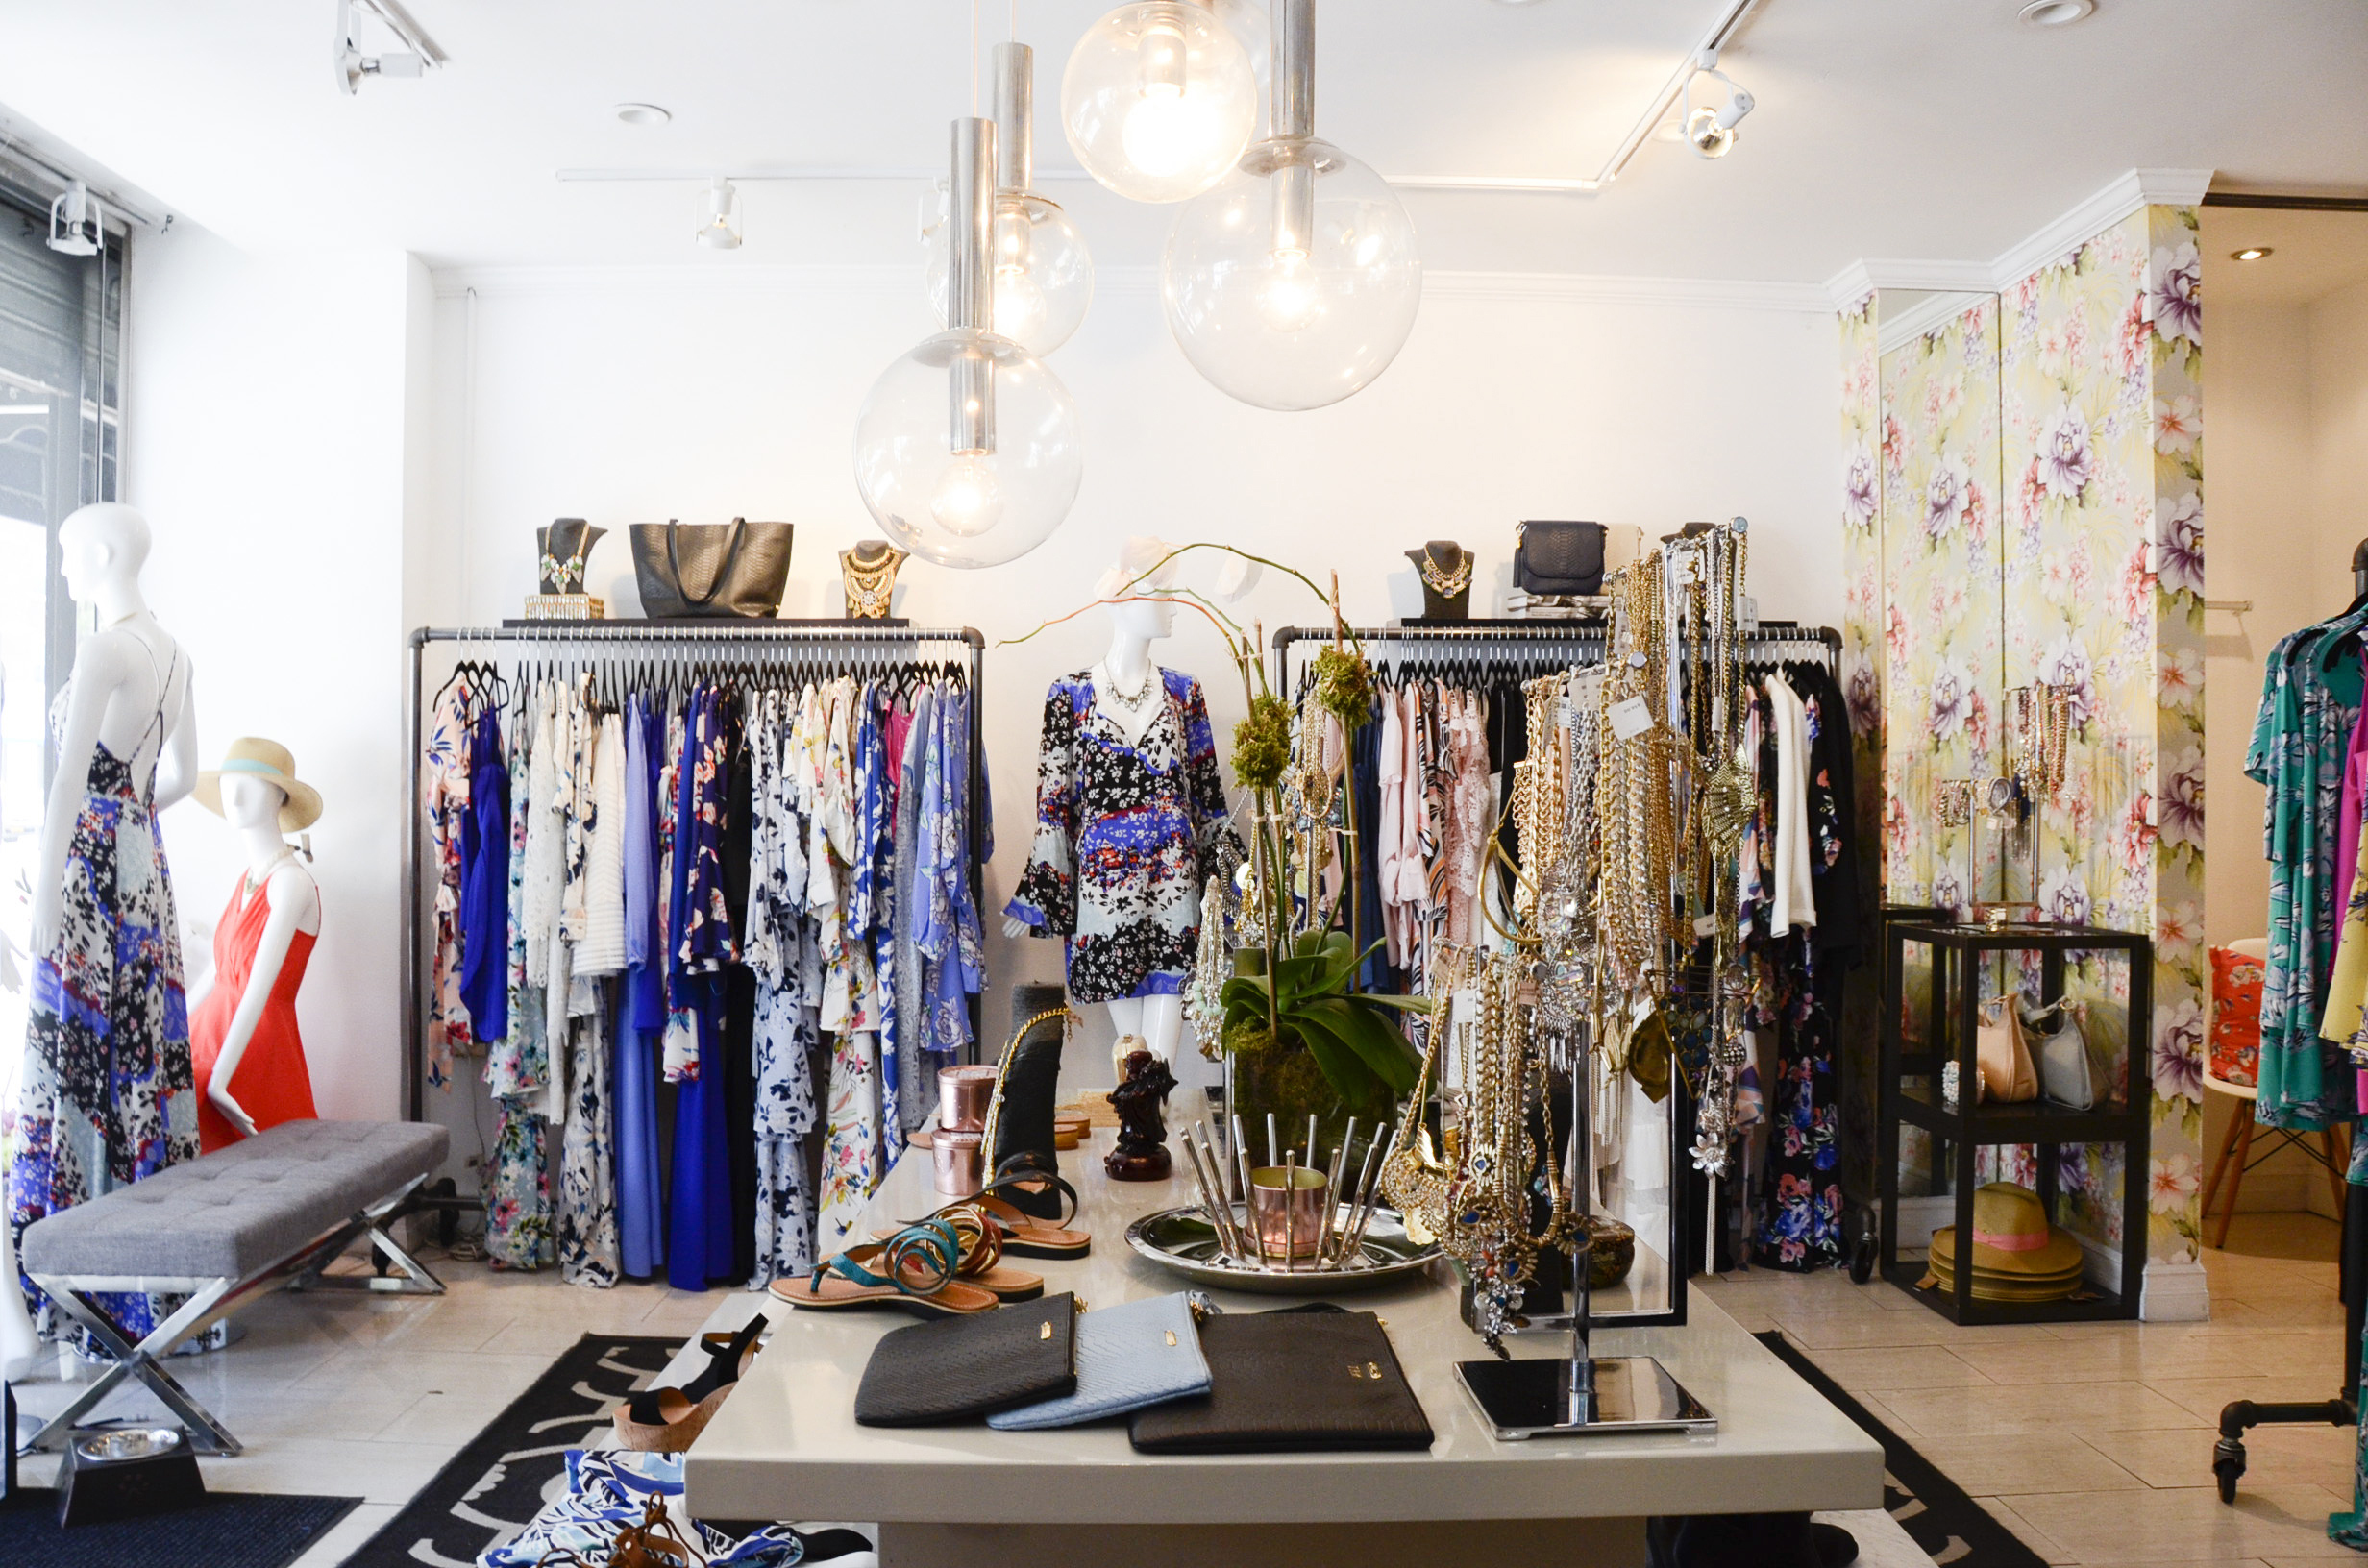 Best dress stores in nyc for shopping at right now for Best boutique hotels nyc 2016